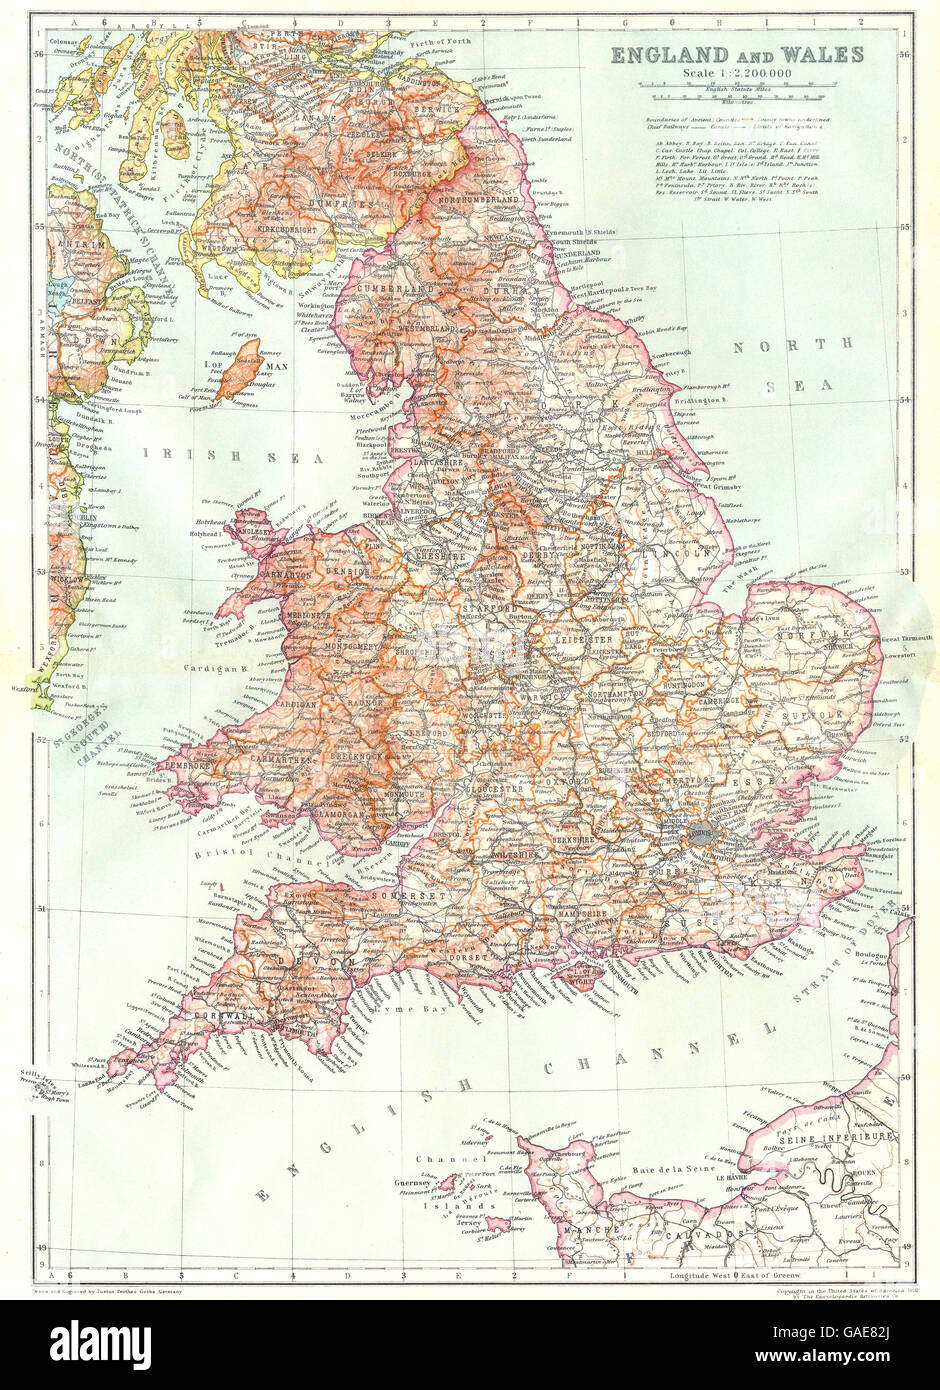 Map Of England 200.England England Wales 1910 Antique Map Stock Photo 109722442